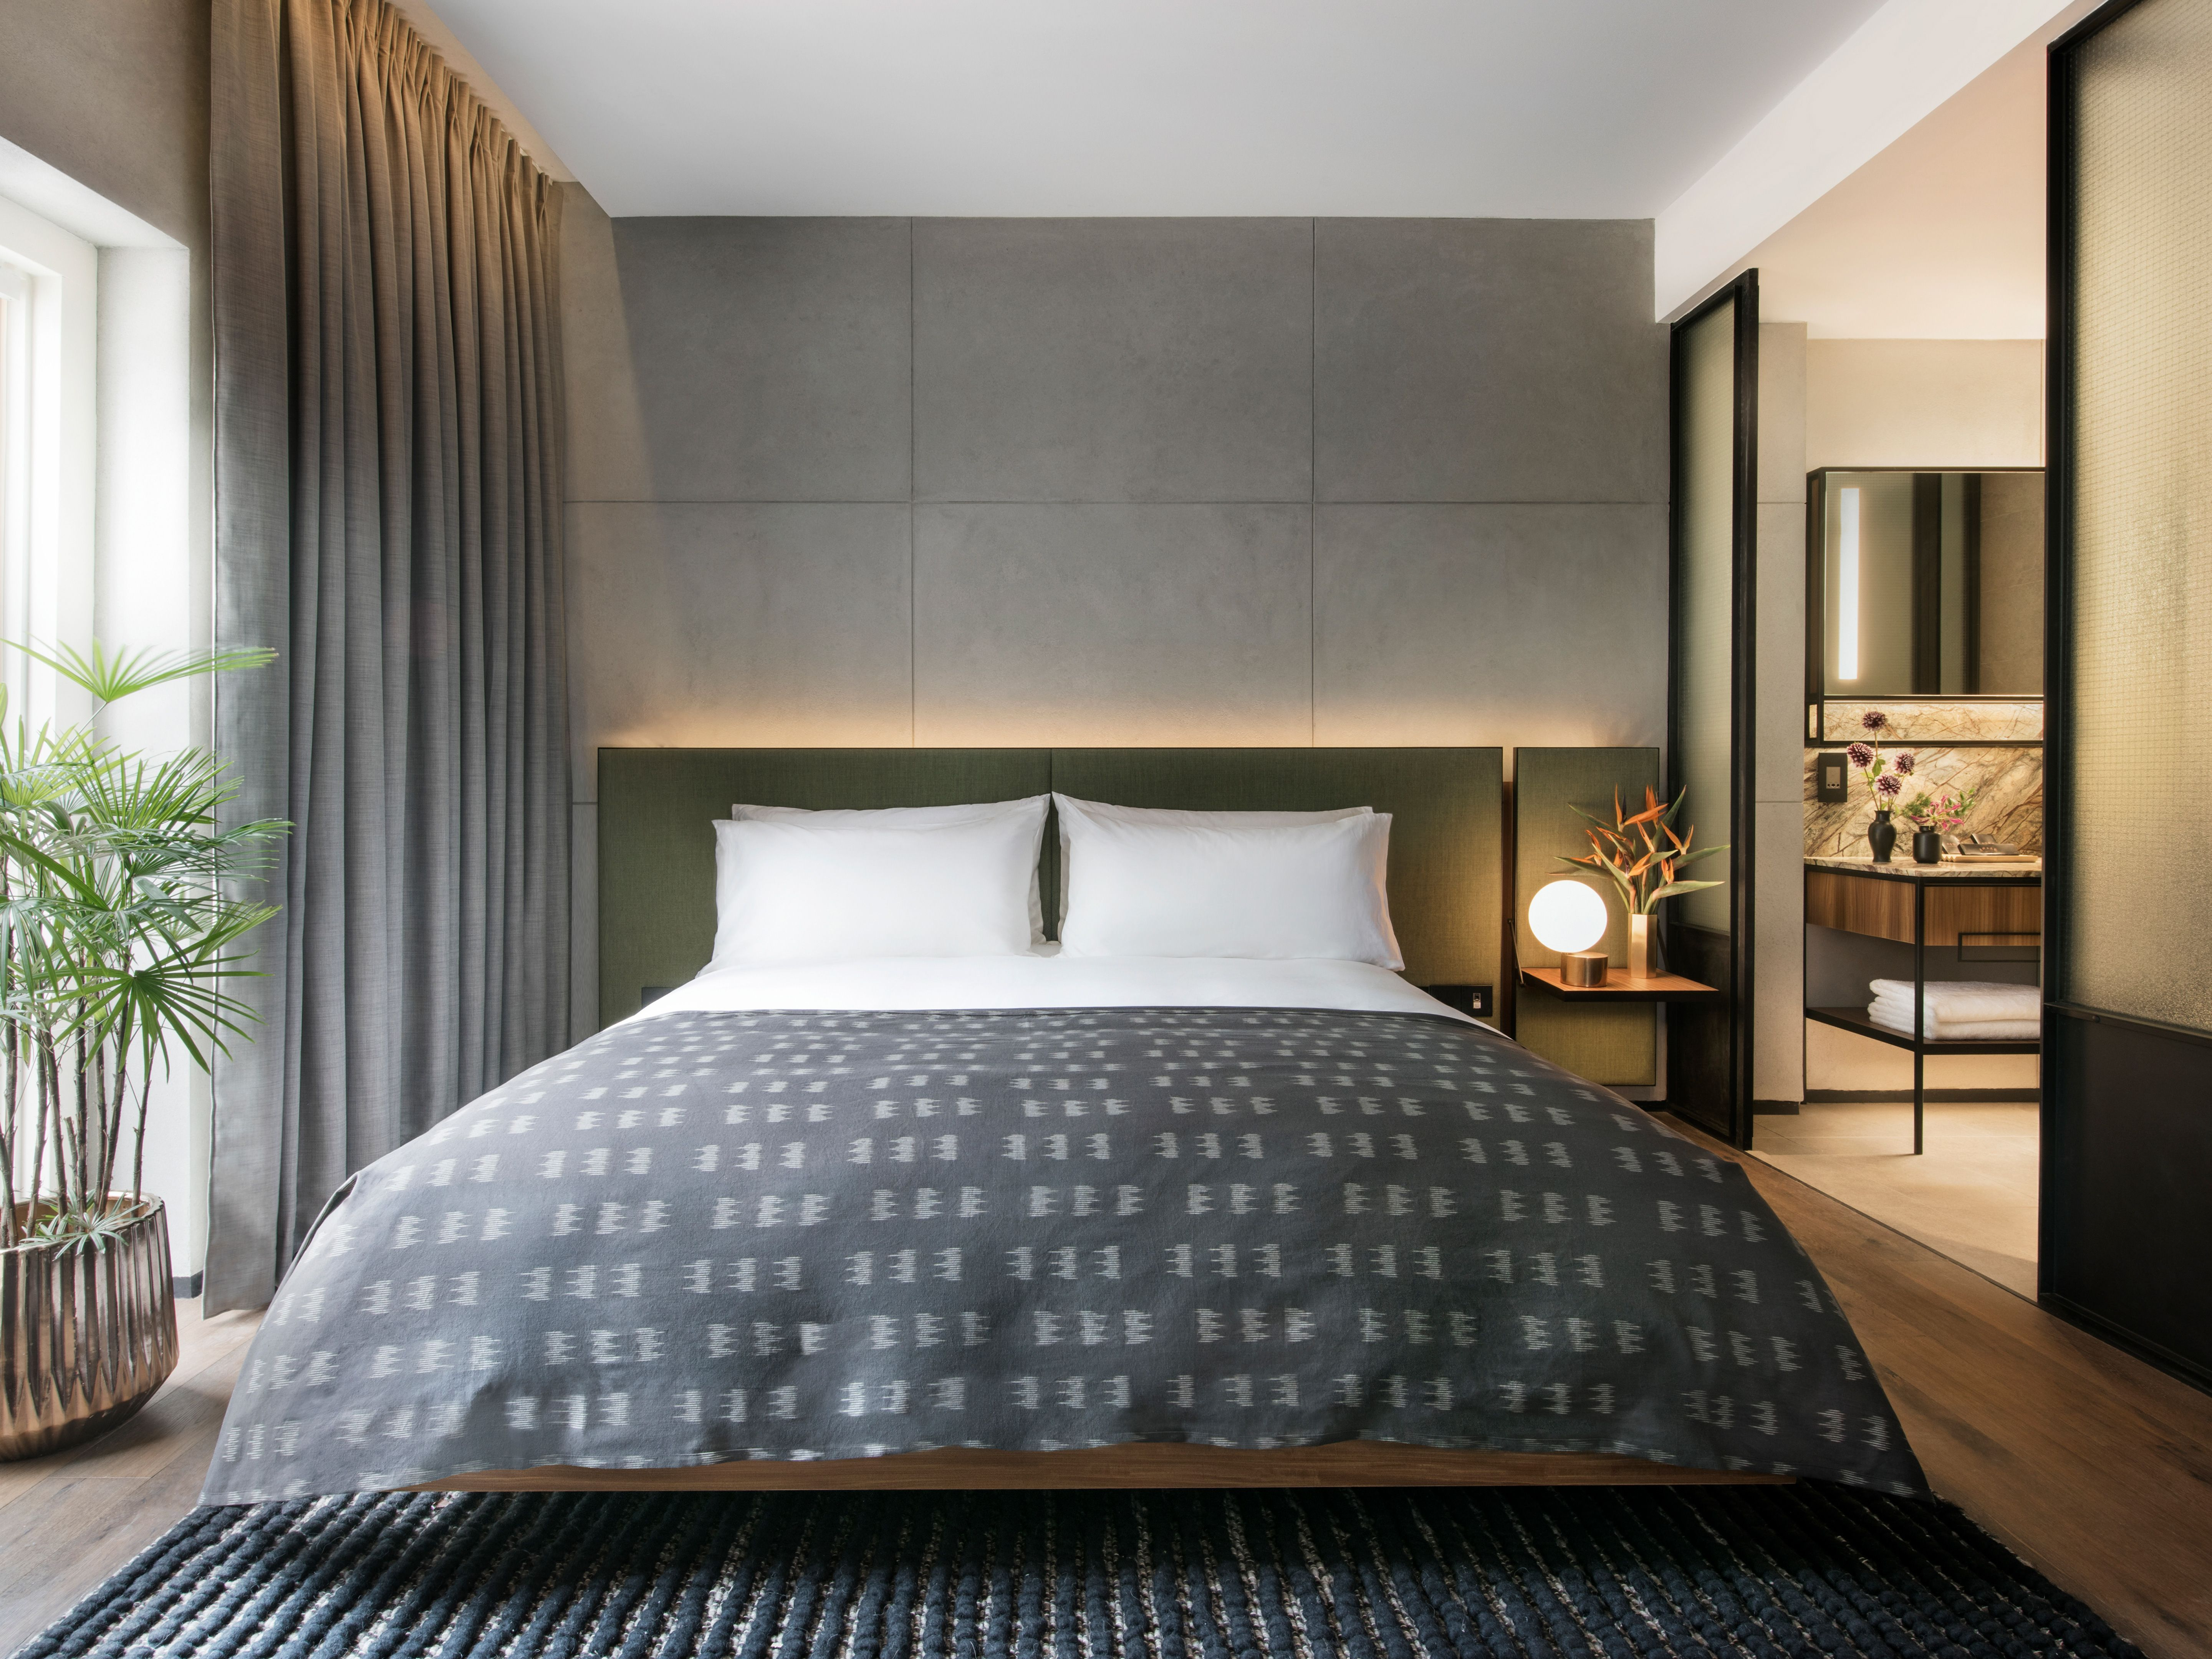 Bedroom Ideas Singapore rooms & suites at the warehouse in singapore - design hotels